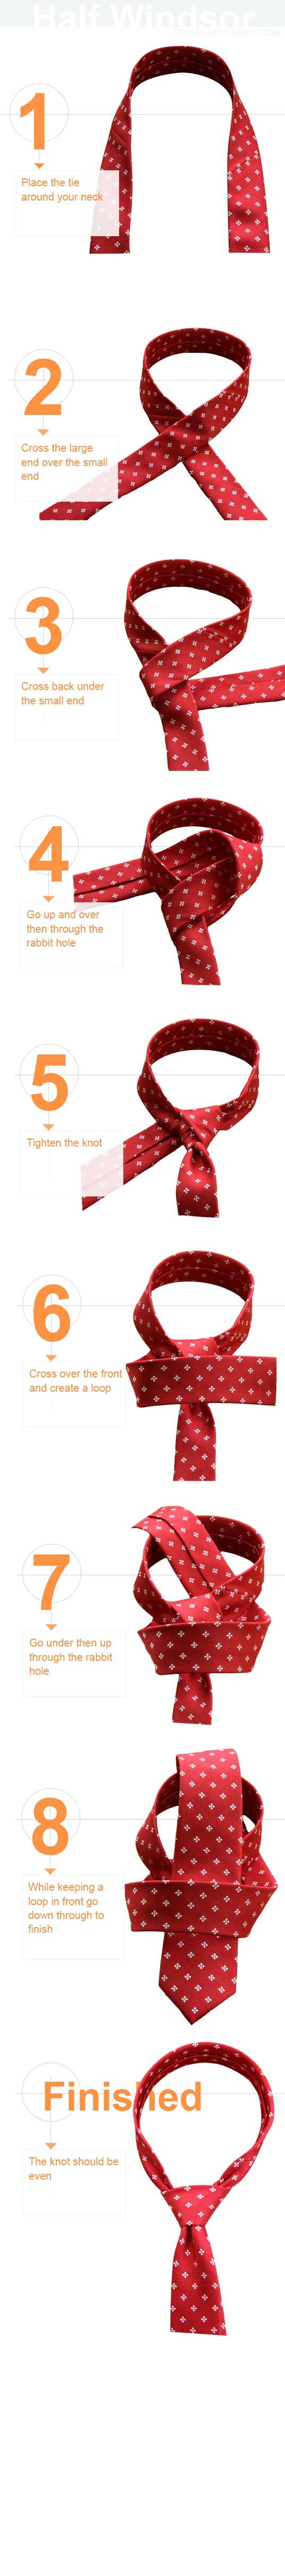 The Half Windsor Knot  is often referred to as the single Windsor knot, is a faster and easier method than the Full Windsor and still gives you that end result of having a full and rich knot.